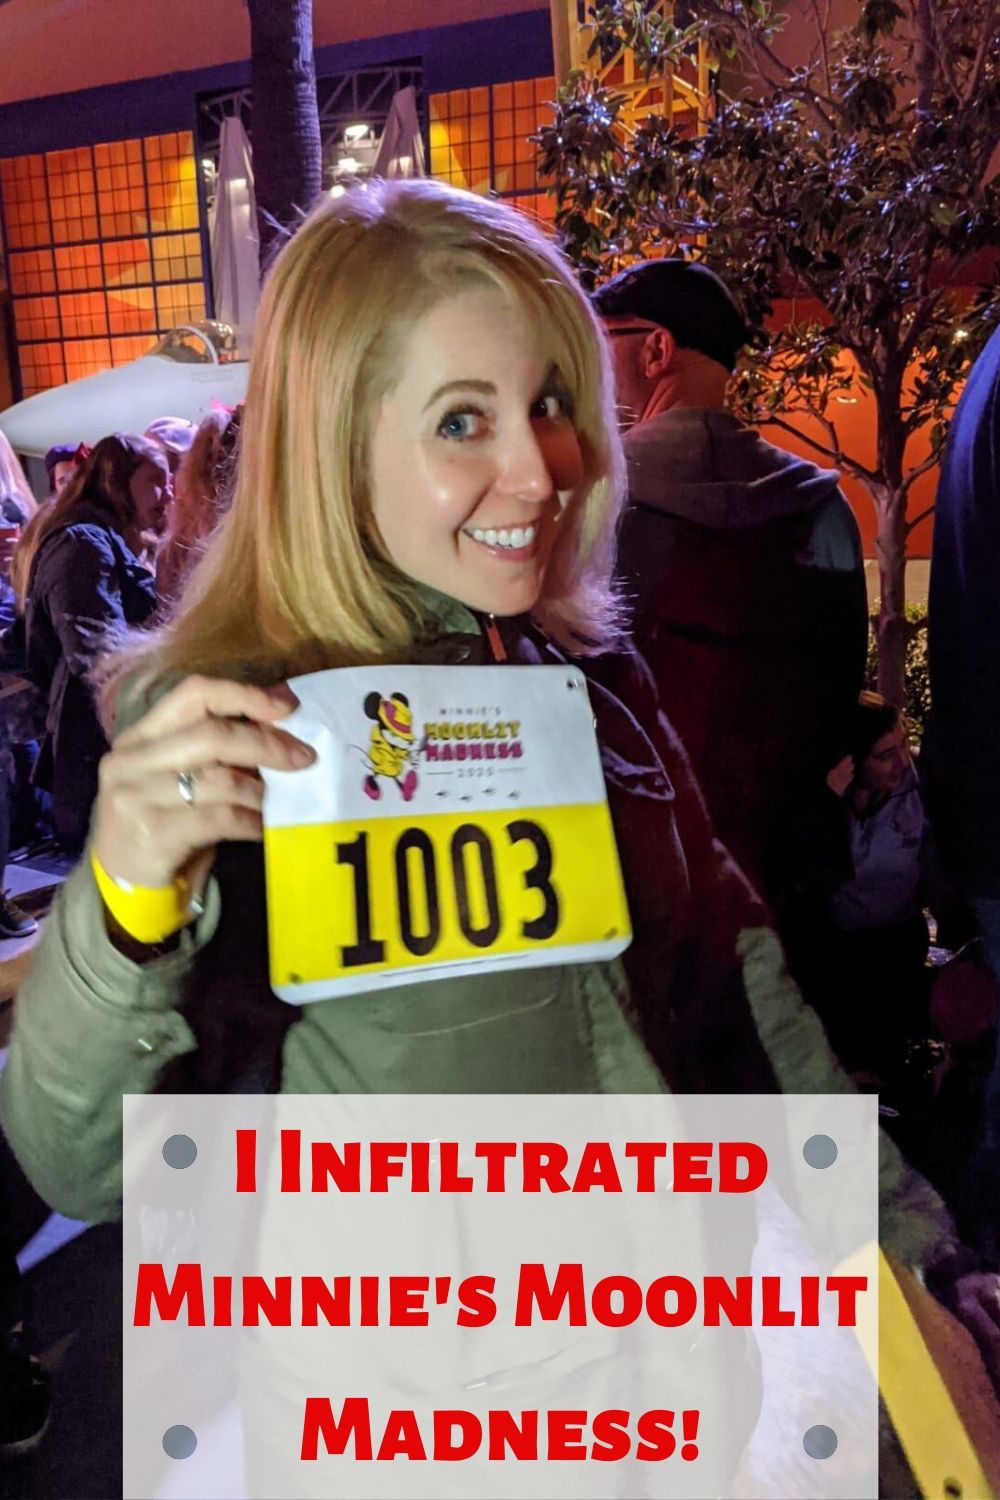 Come along as I recount my adventures at the super exclusive Cast Member Scavenger Hunt - Minnie's Moonlit Madness! #disneyland #castmember #disney #minniesmoonlitmadness #scavengerhunt